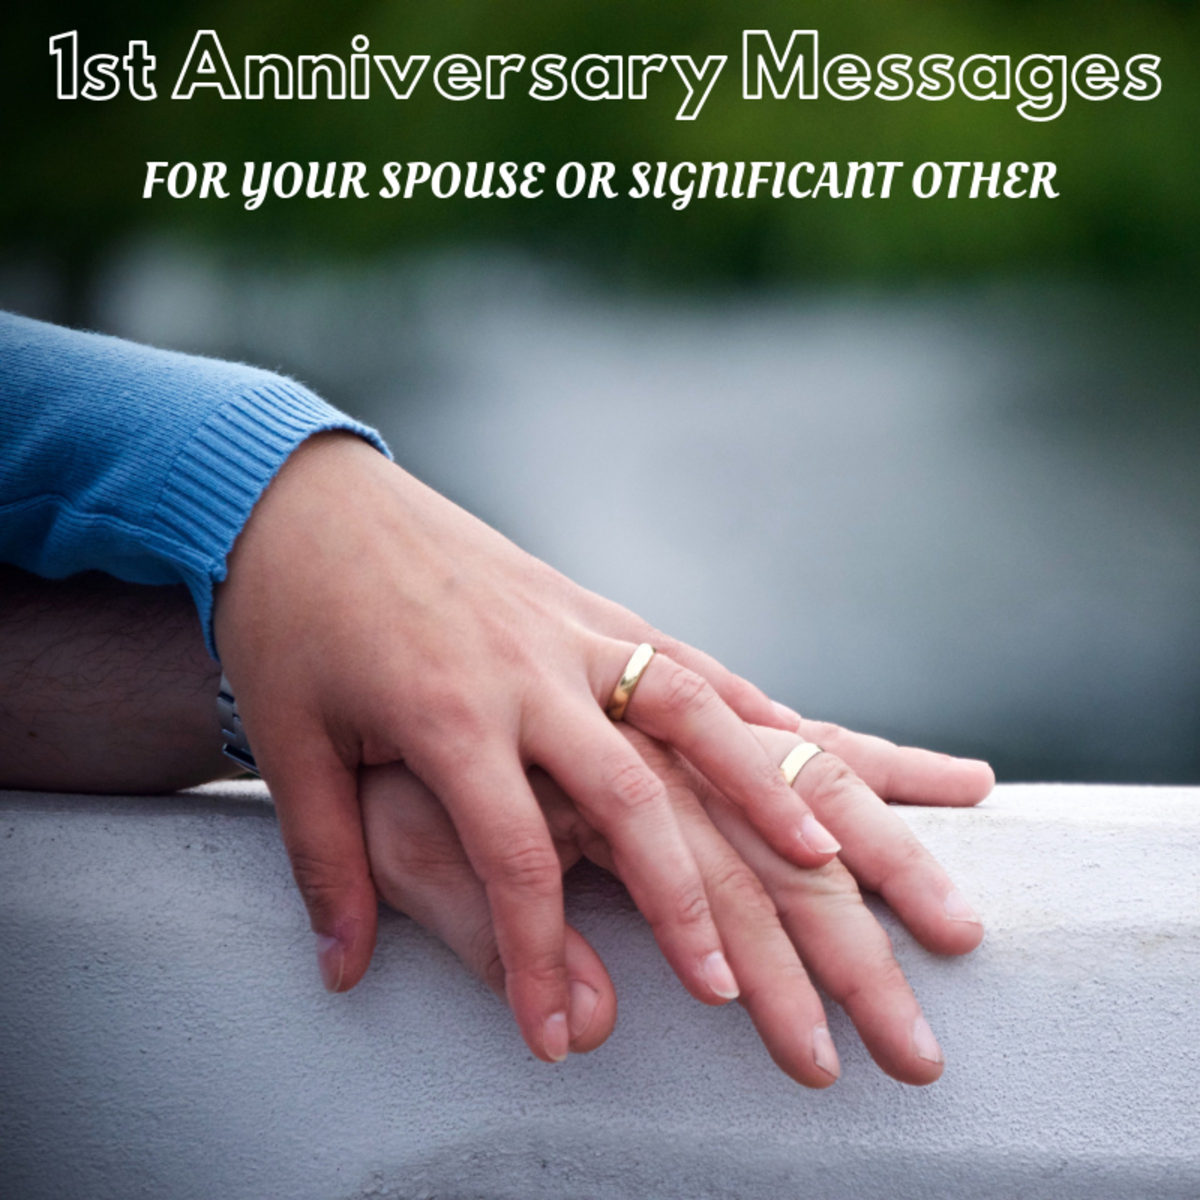 A first anniversary is something to celebrate—make your words count.